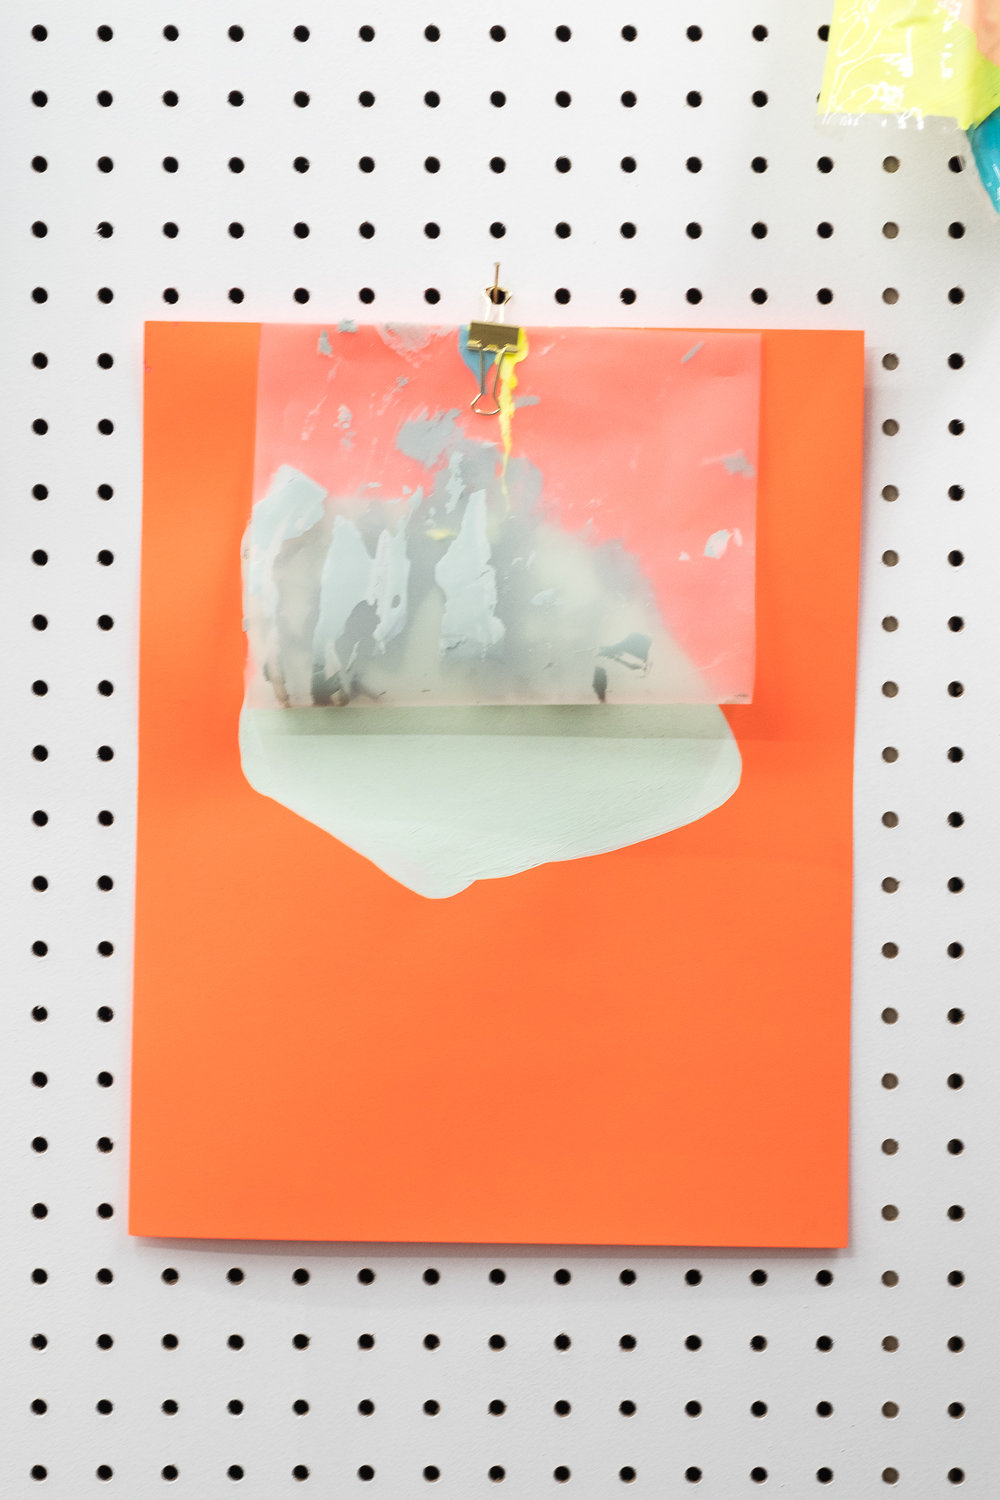 Jeanie Riddle. Umbrella (Orange), 2018. Paper, acrylic, plastic, metal. [Photo by Morgane Clément-Gagnon]